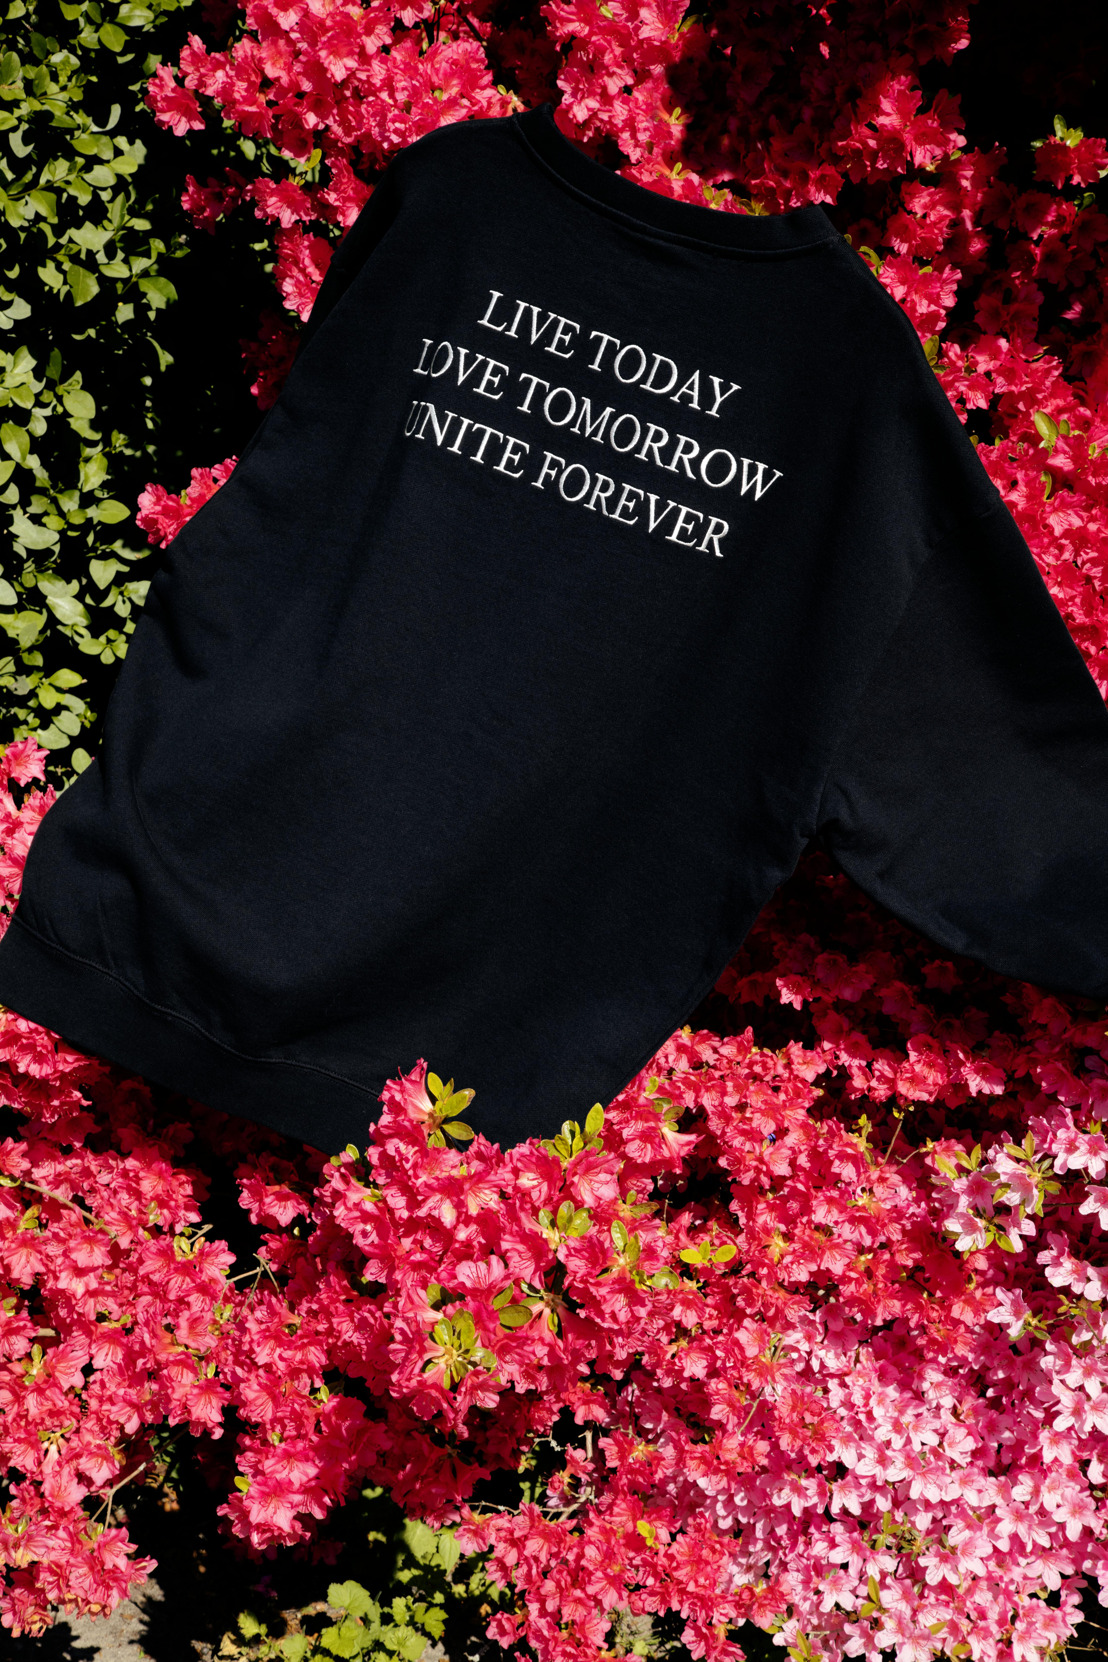 TML by Tomorrowland creates Unite Forever capsule collection featuring bold statement pieces and tie-dye prints